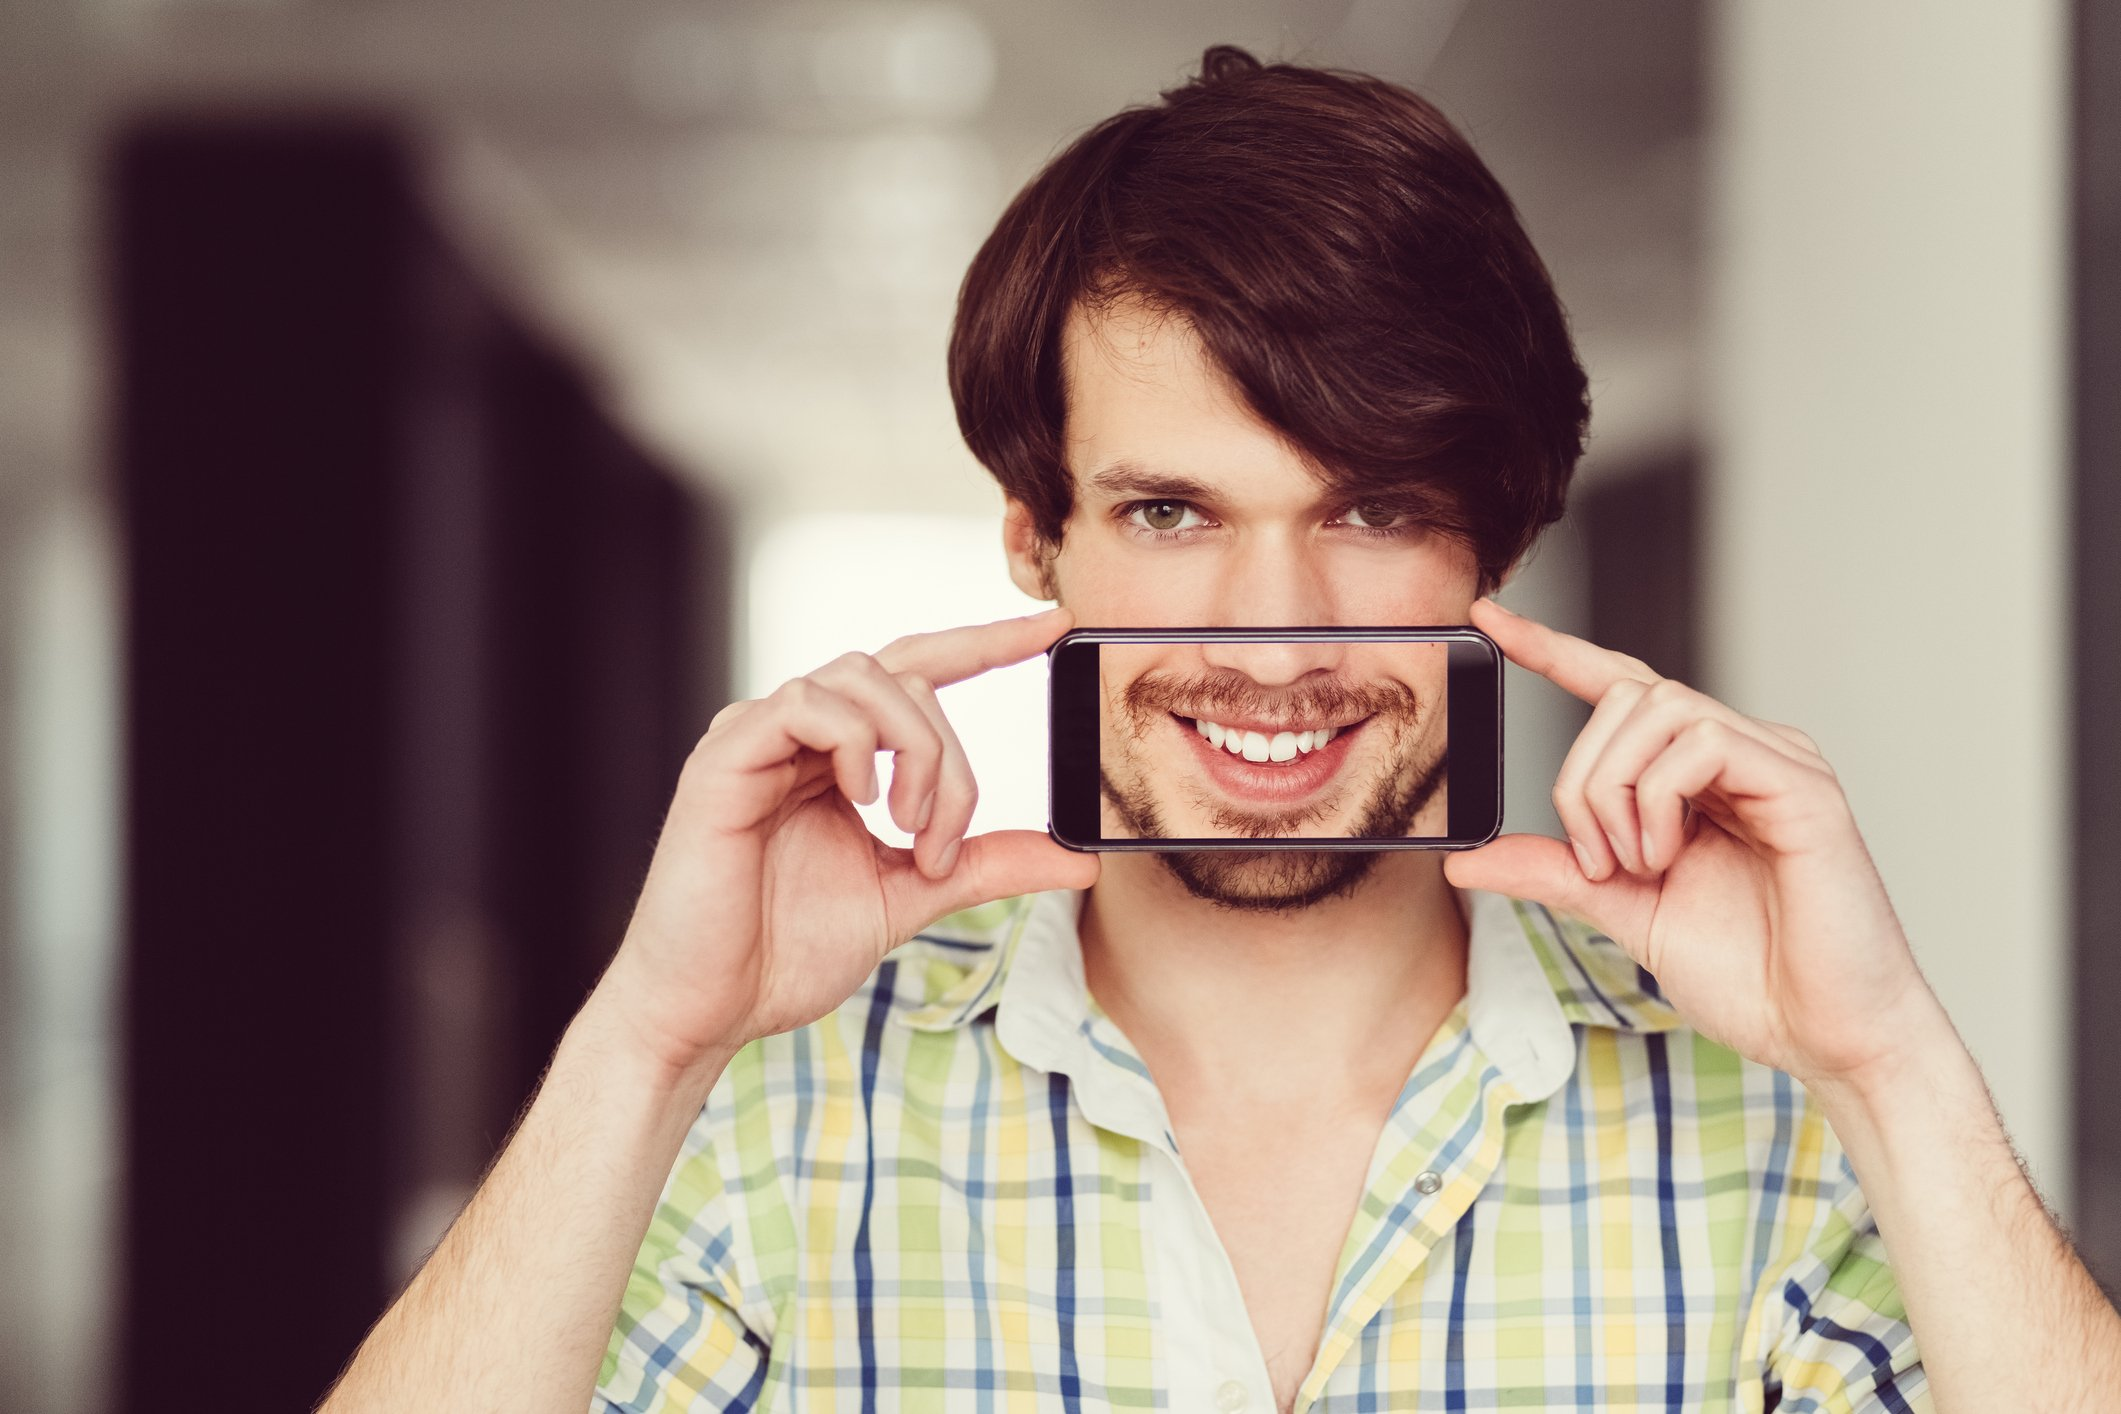 Man Holding iPhone in Front of Mouth